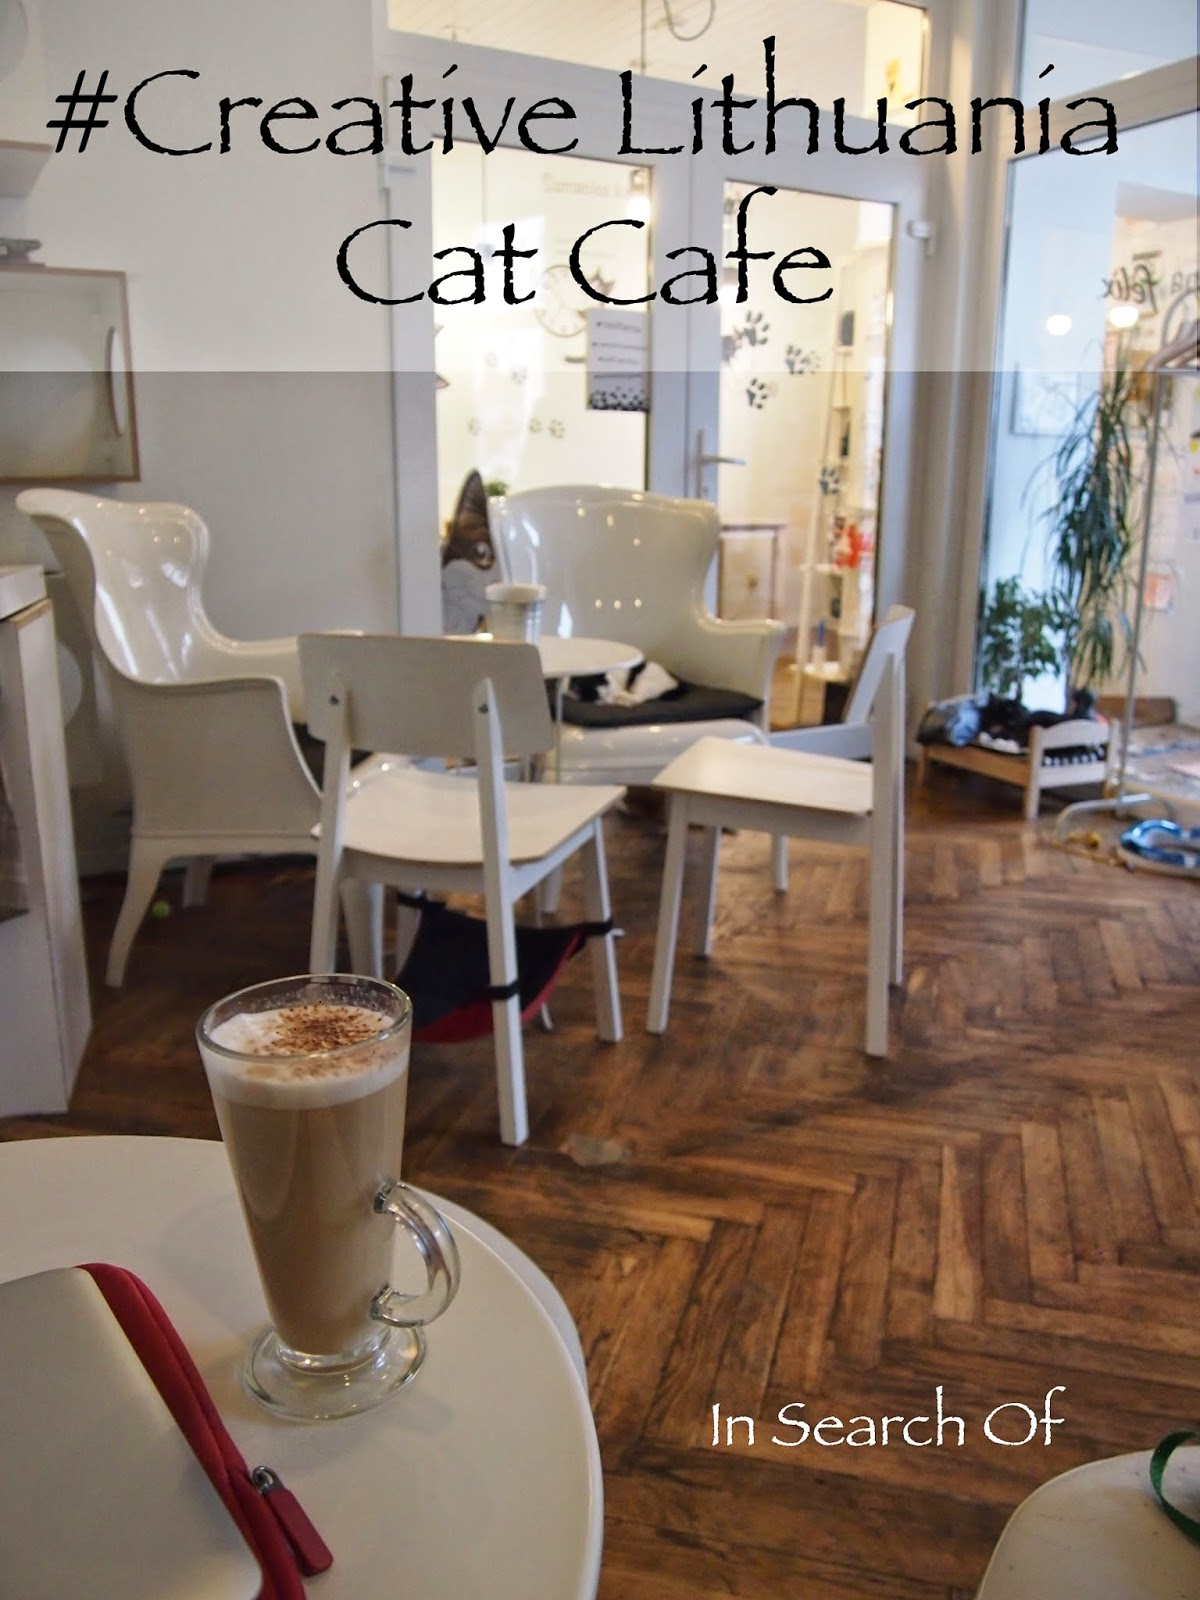 the interior of the cat cafe in Vilnius, Lithuania